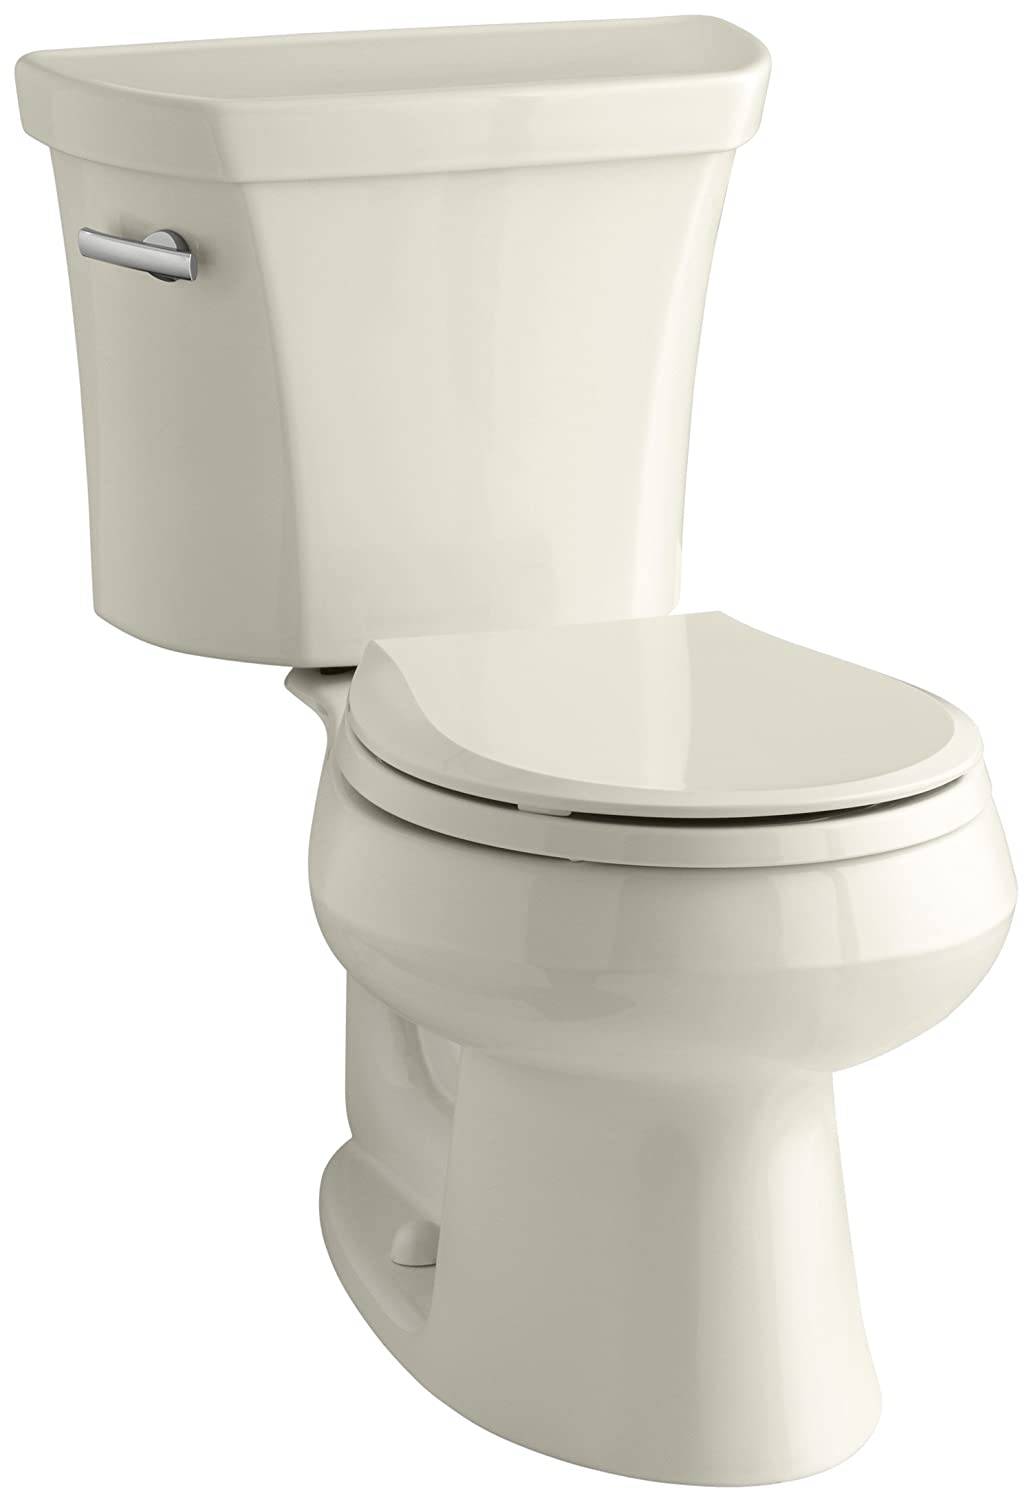 80%OFF Kohler K-3977-47 Wellworth Round-Front 1.6 gpf Toilet, Almond